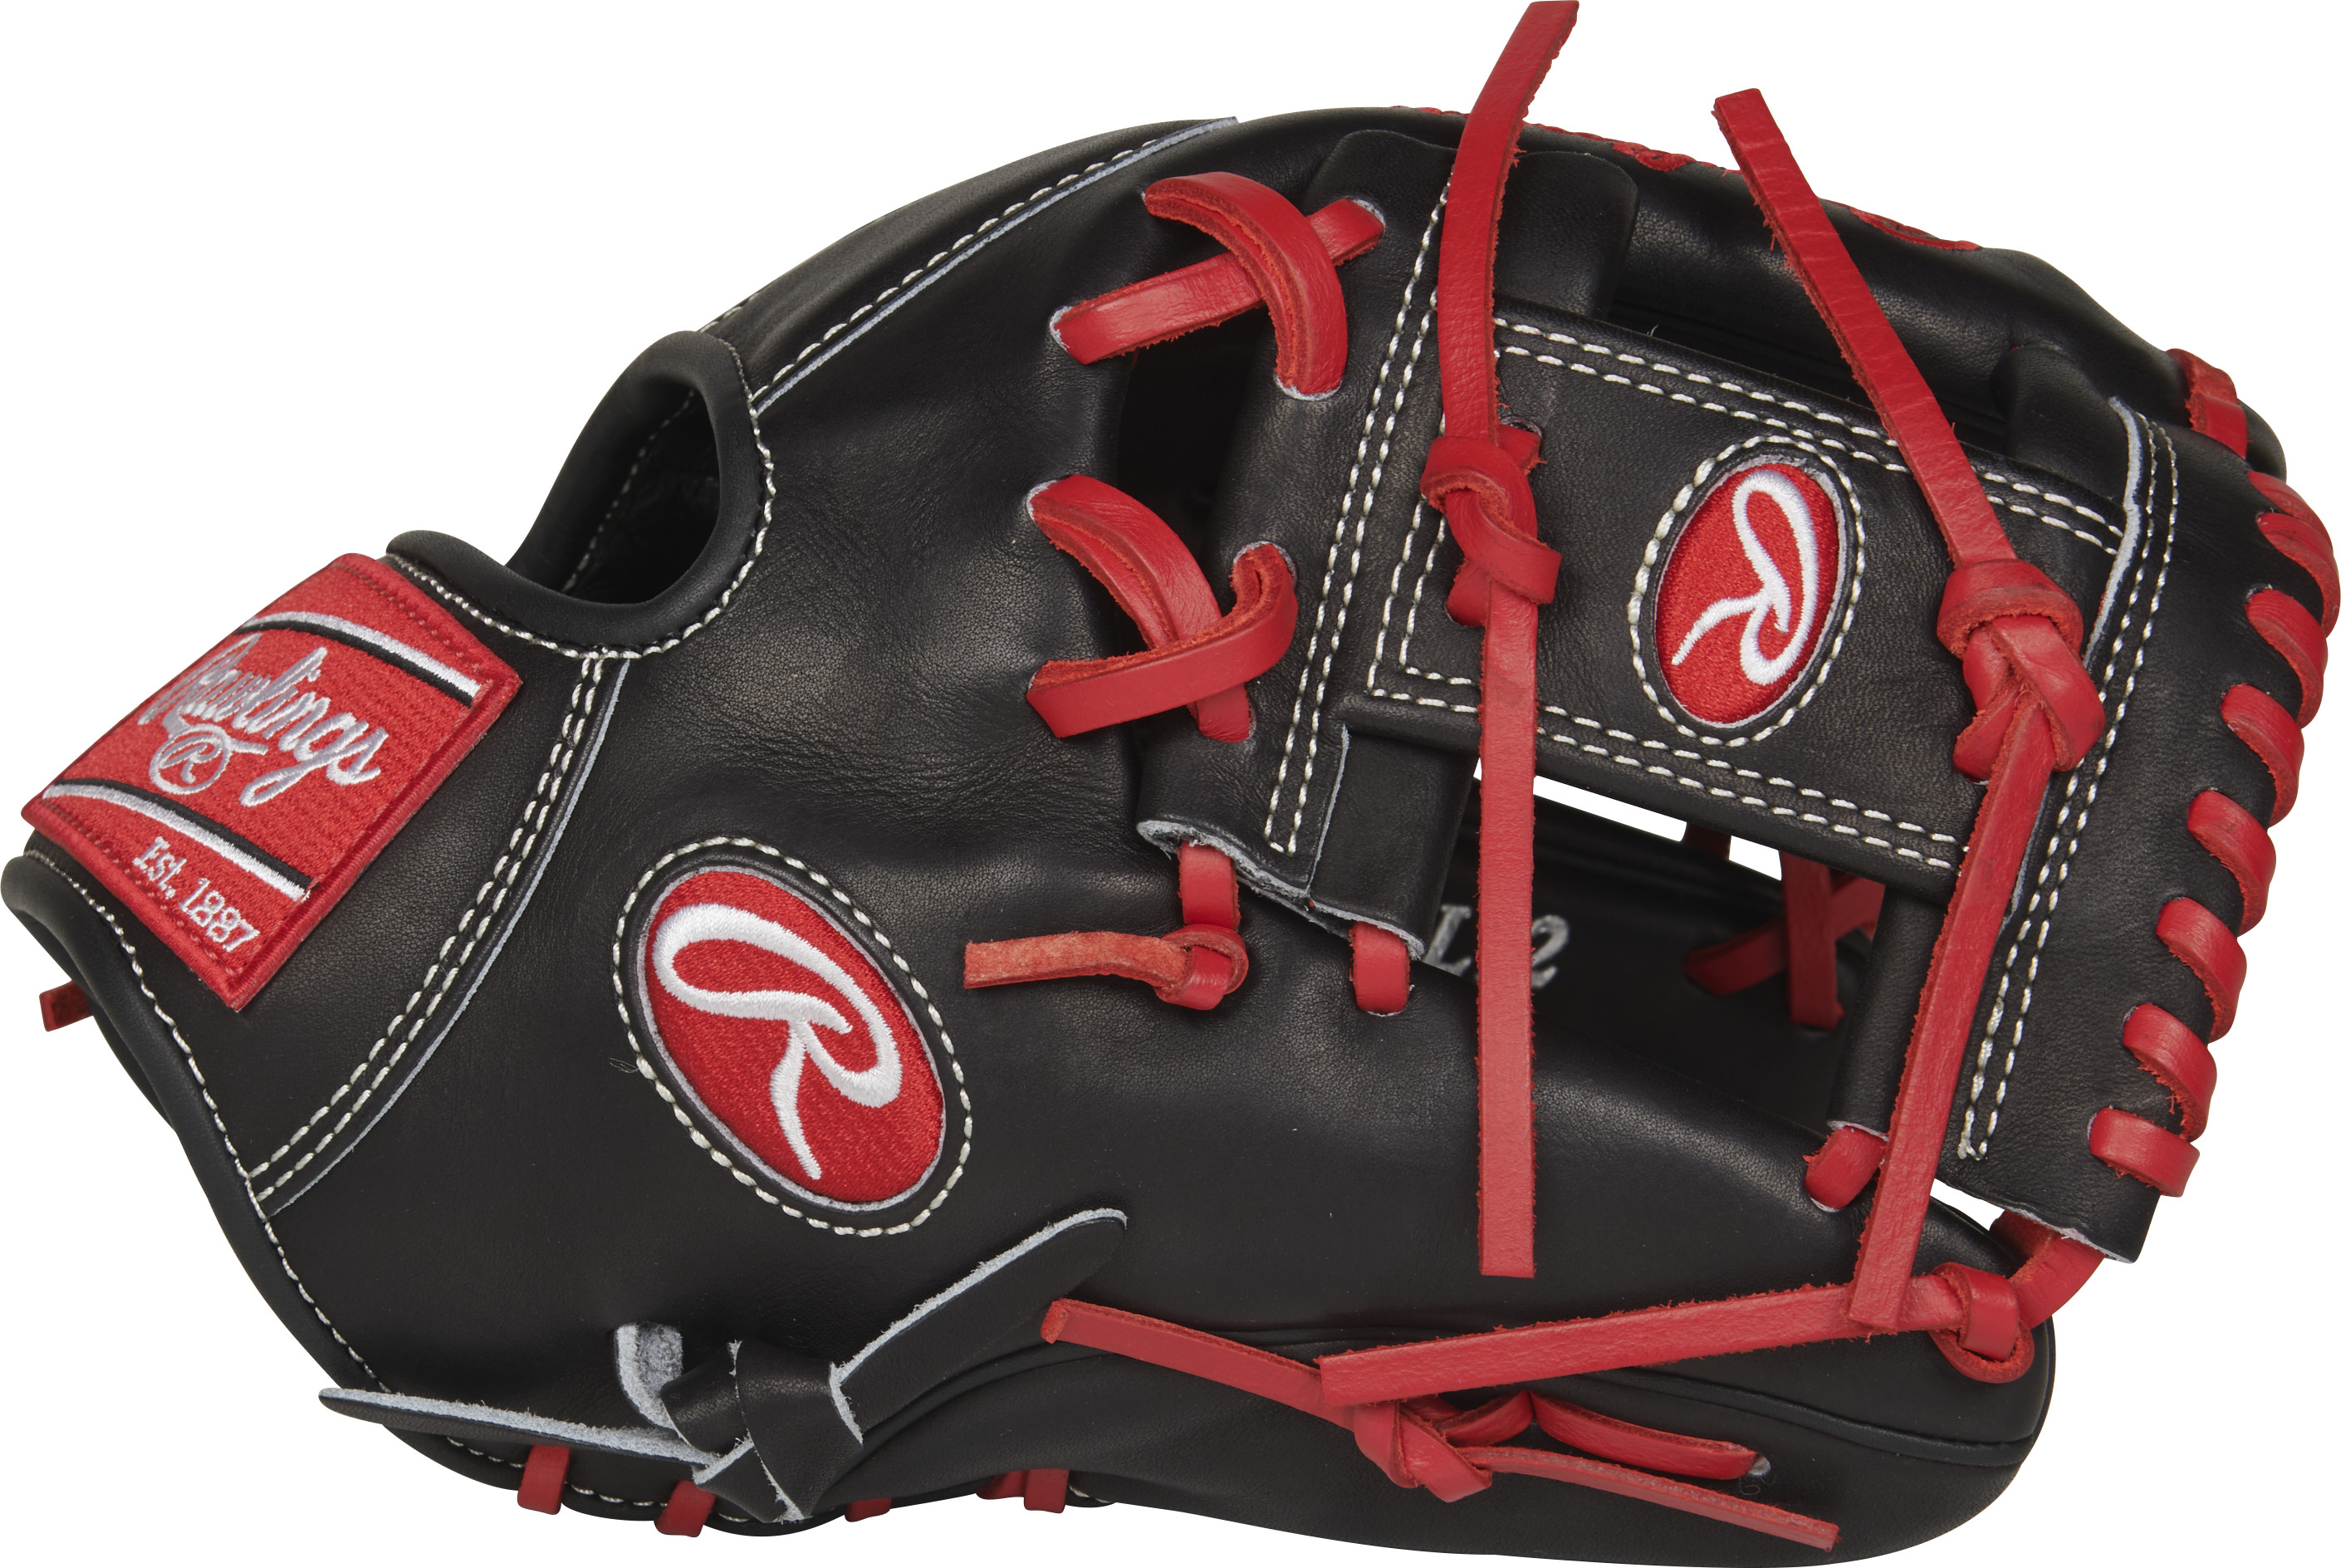 http://www.bestbatdeals.com/images/gloves/rawlings/PROSFL12-3.jpg